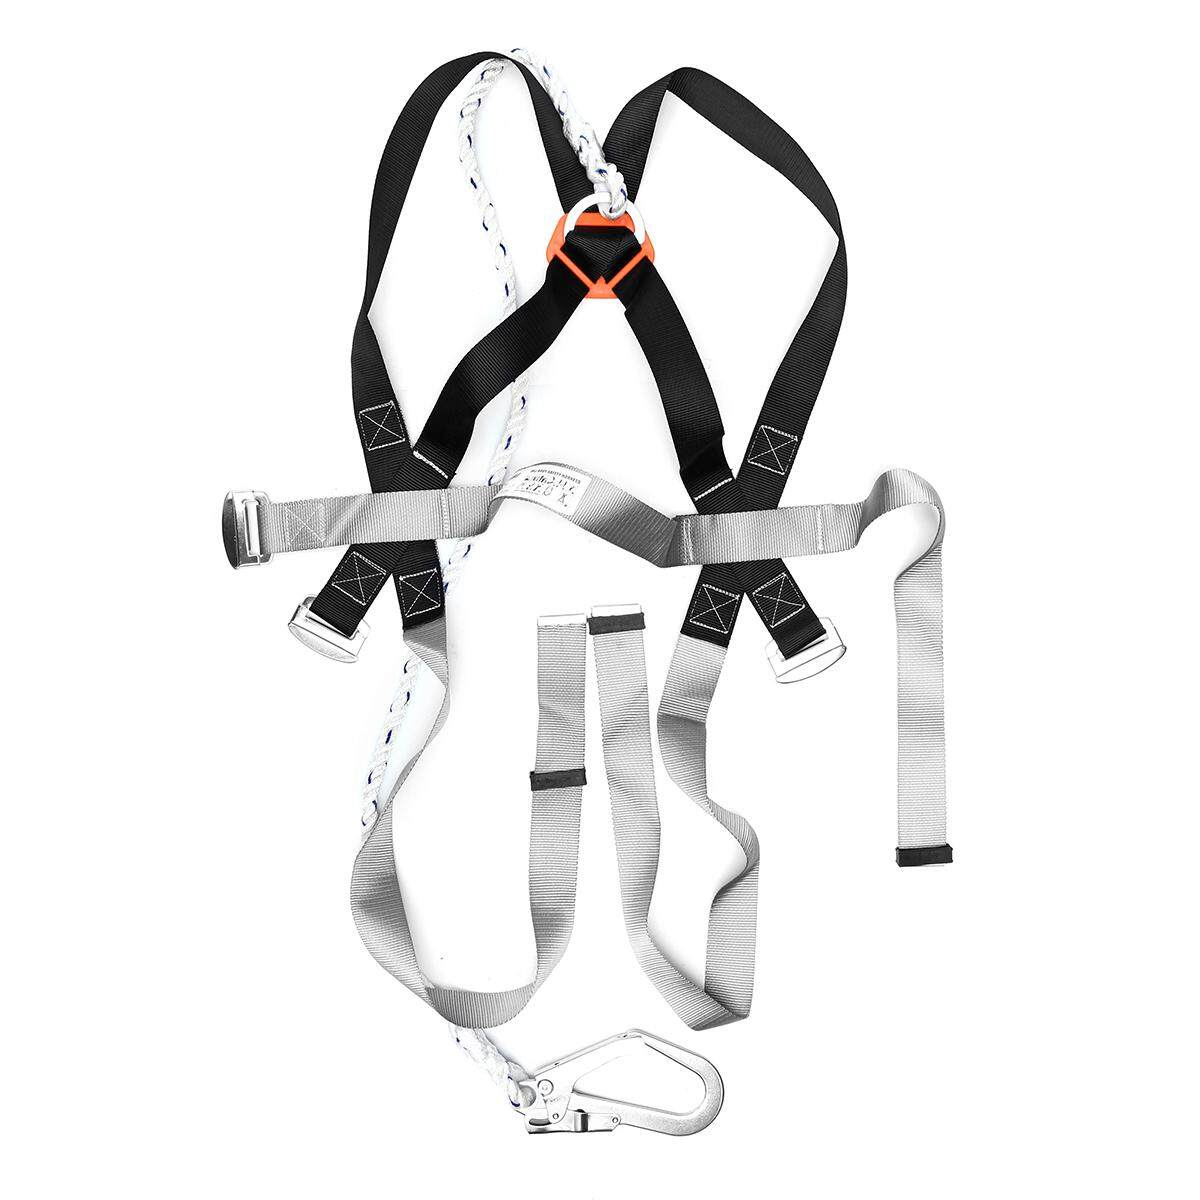 Safety Fall Protection Kit Full Body Harness W 6 Shock-Absorbing Safey Lanyard By Glimmer.